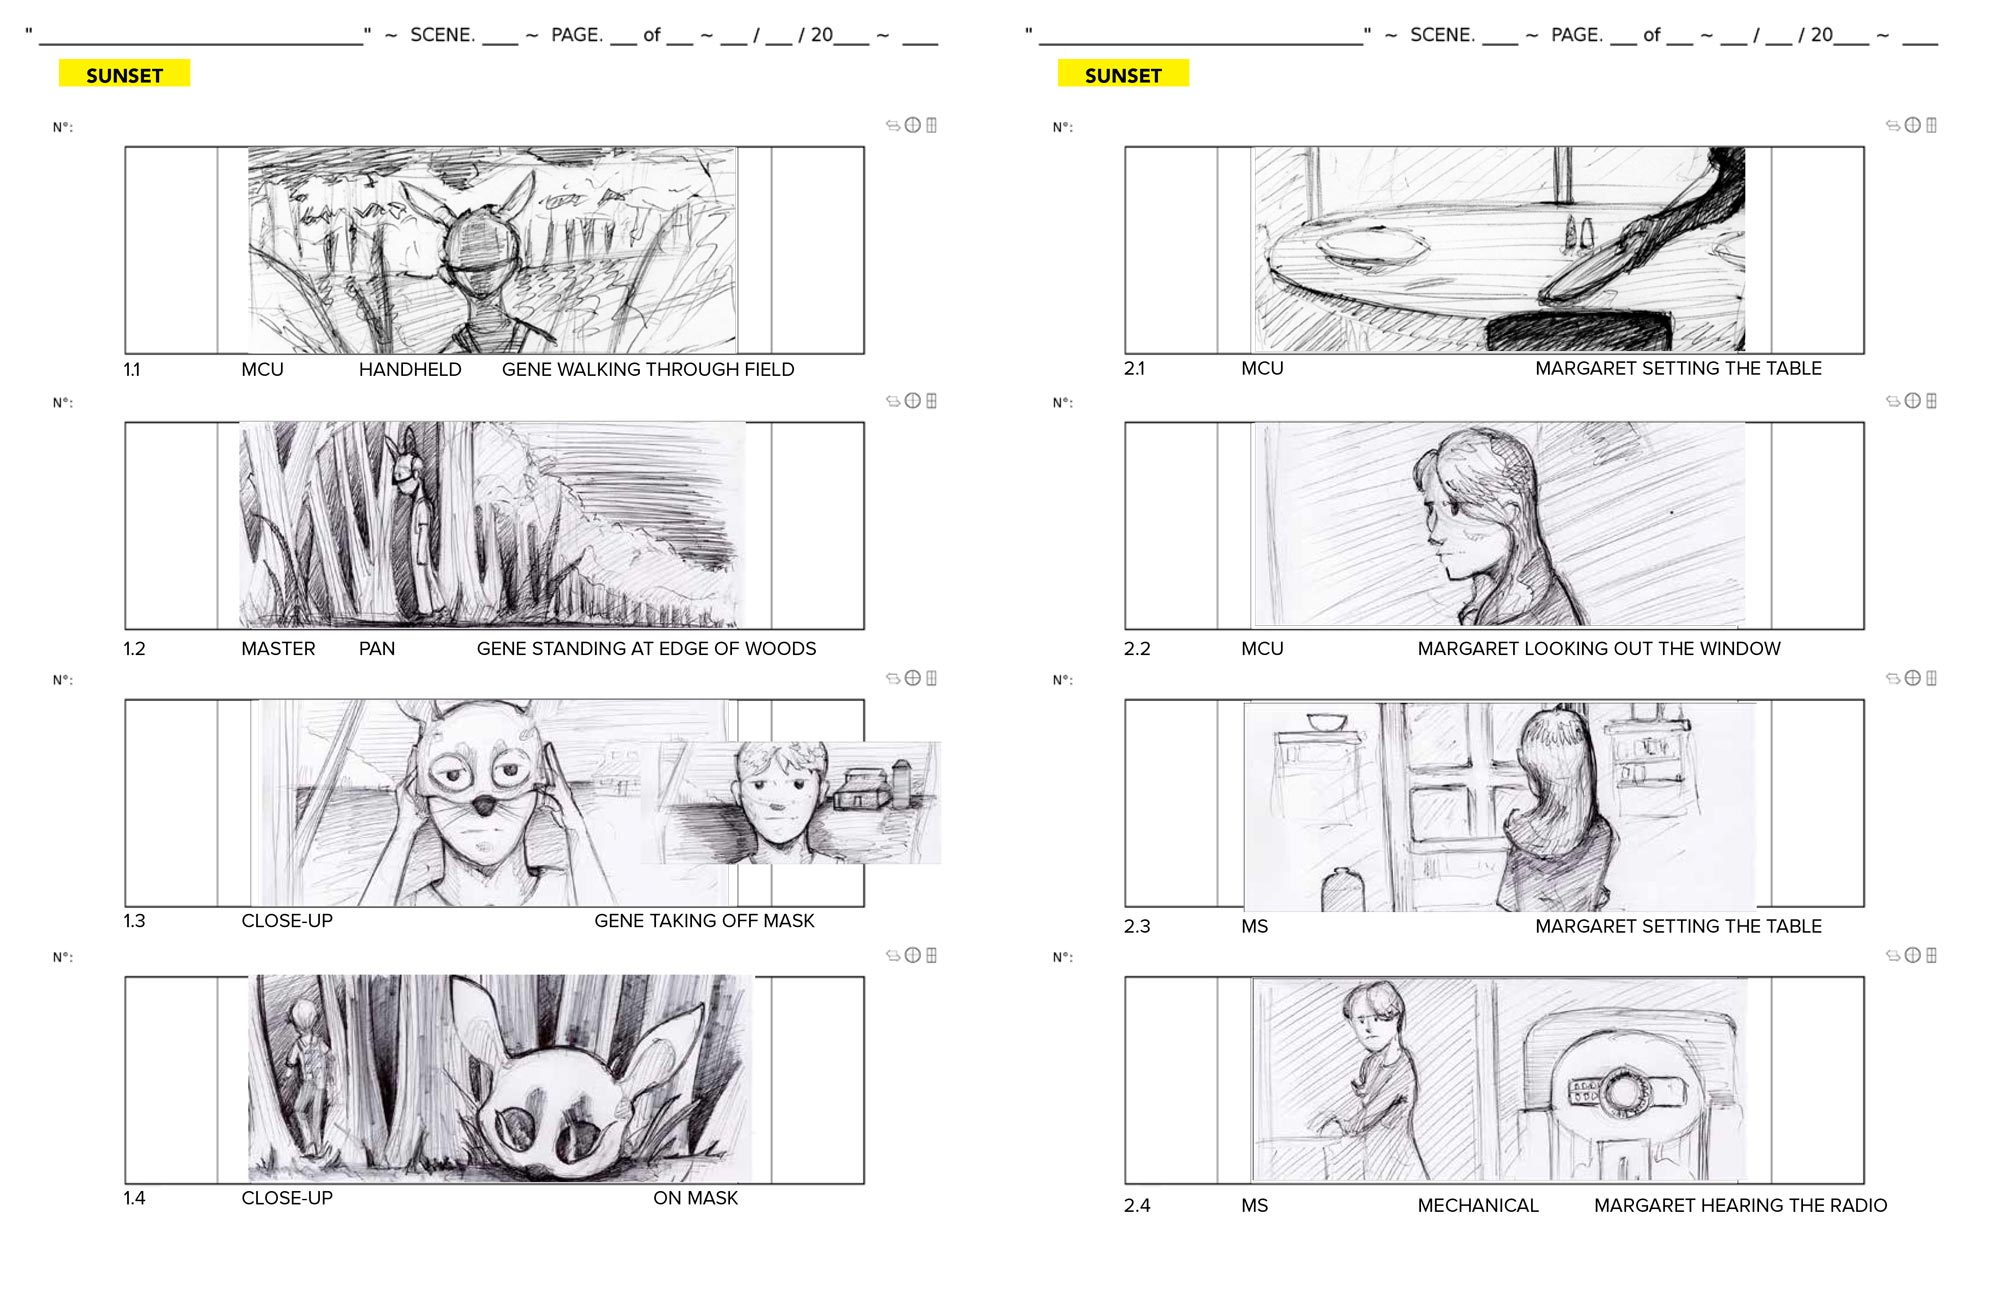 [click to view full storyboard]